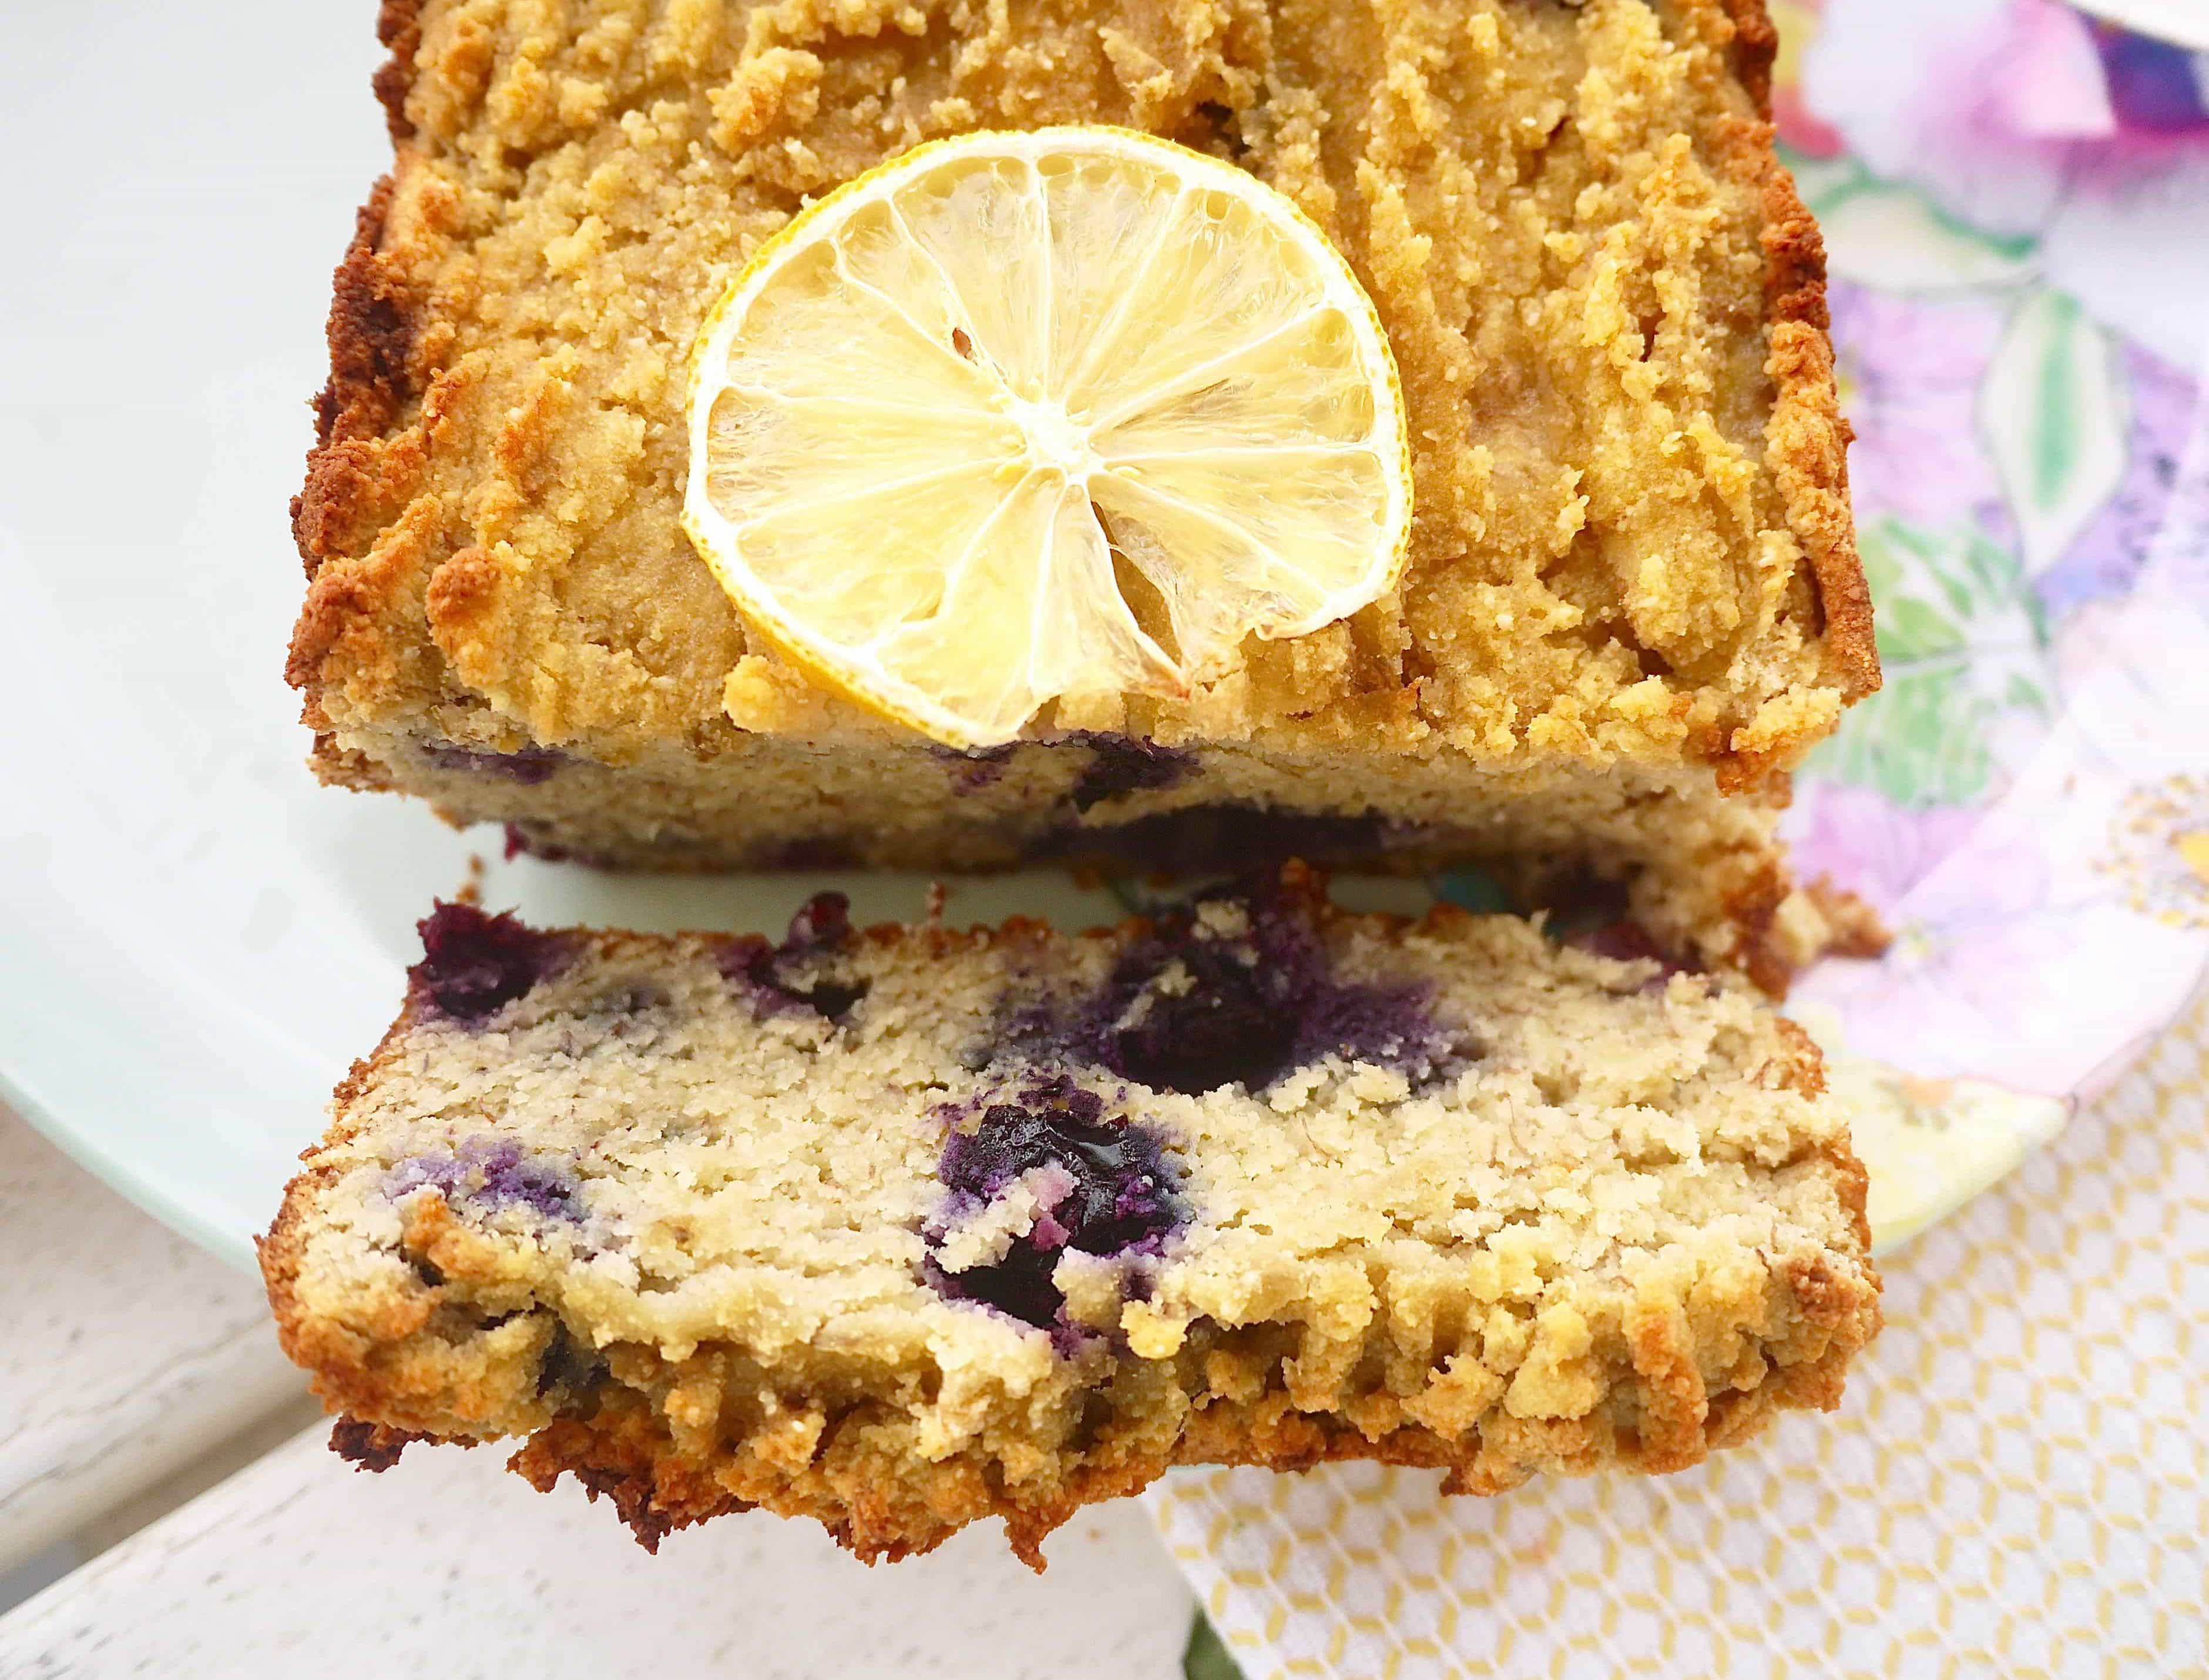 Paleo Lemon Blueberry Banana Bread (GF)...Clean eating at it's most delicious! |Perchance To Cook, www.perchancetocook.com